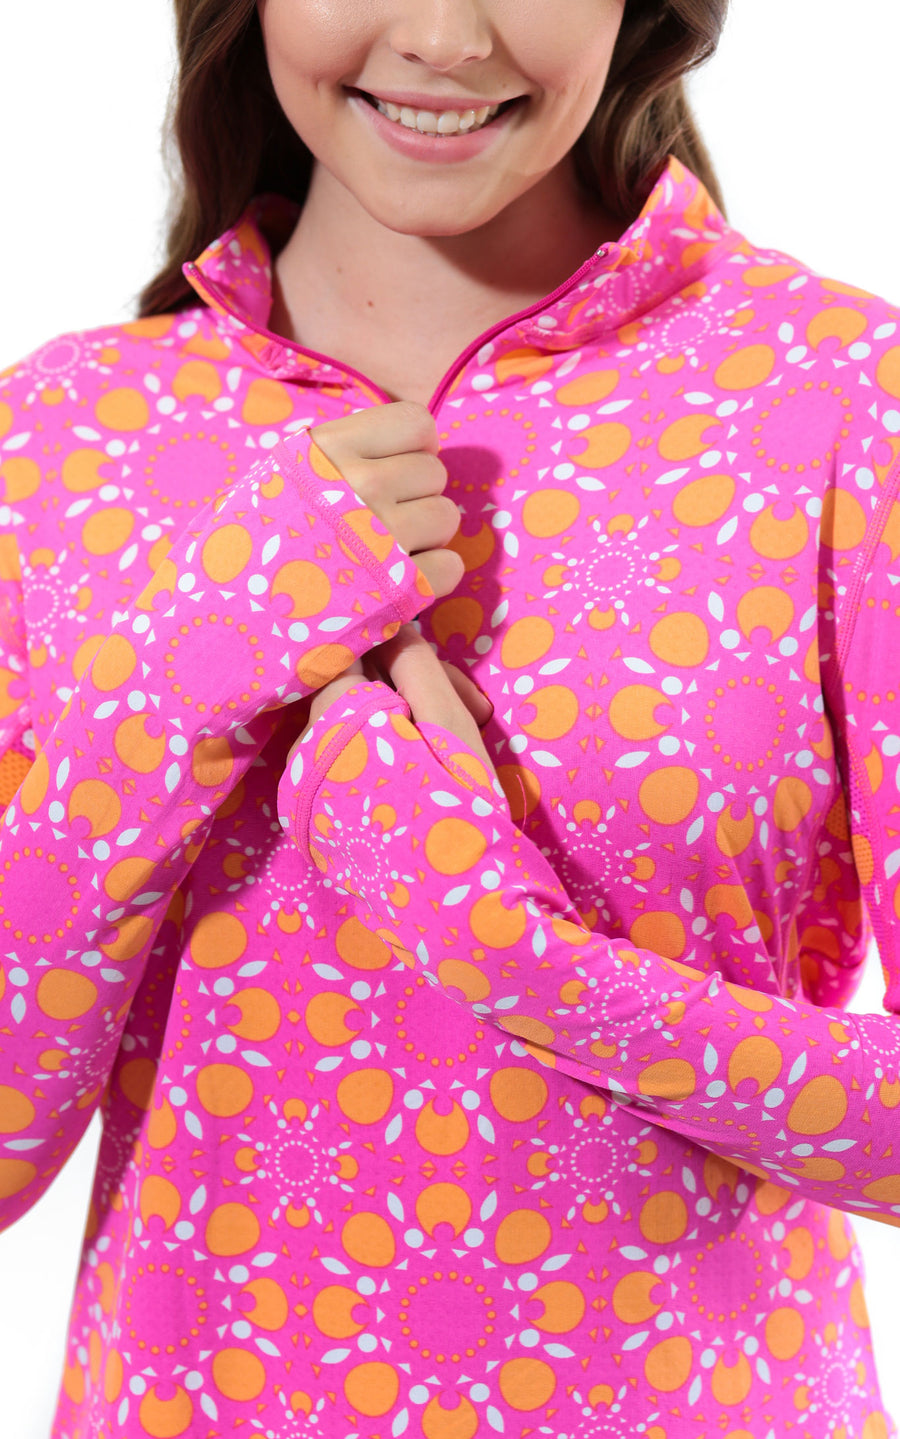 Sun Seeker Pink Quarter Zip Sun Protective Top - FINAL SALE